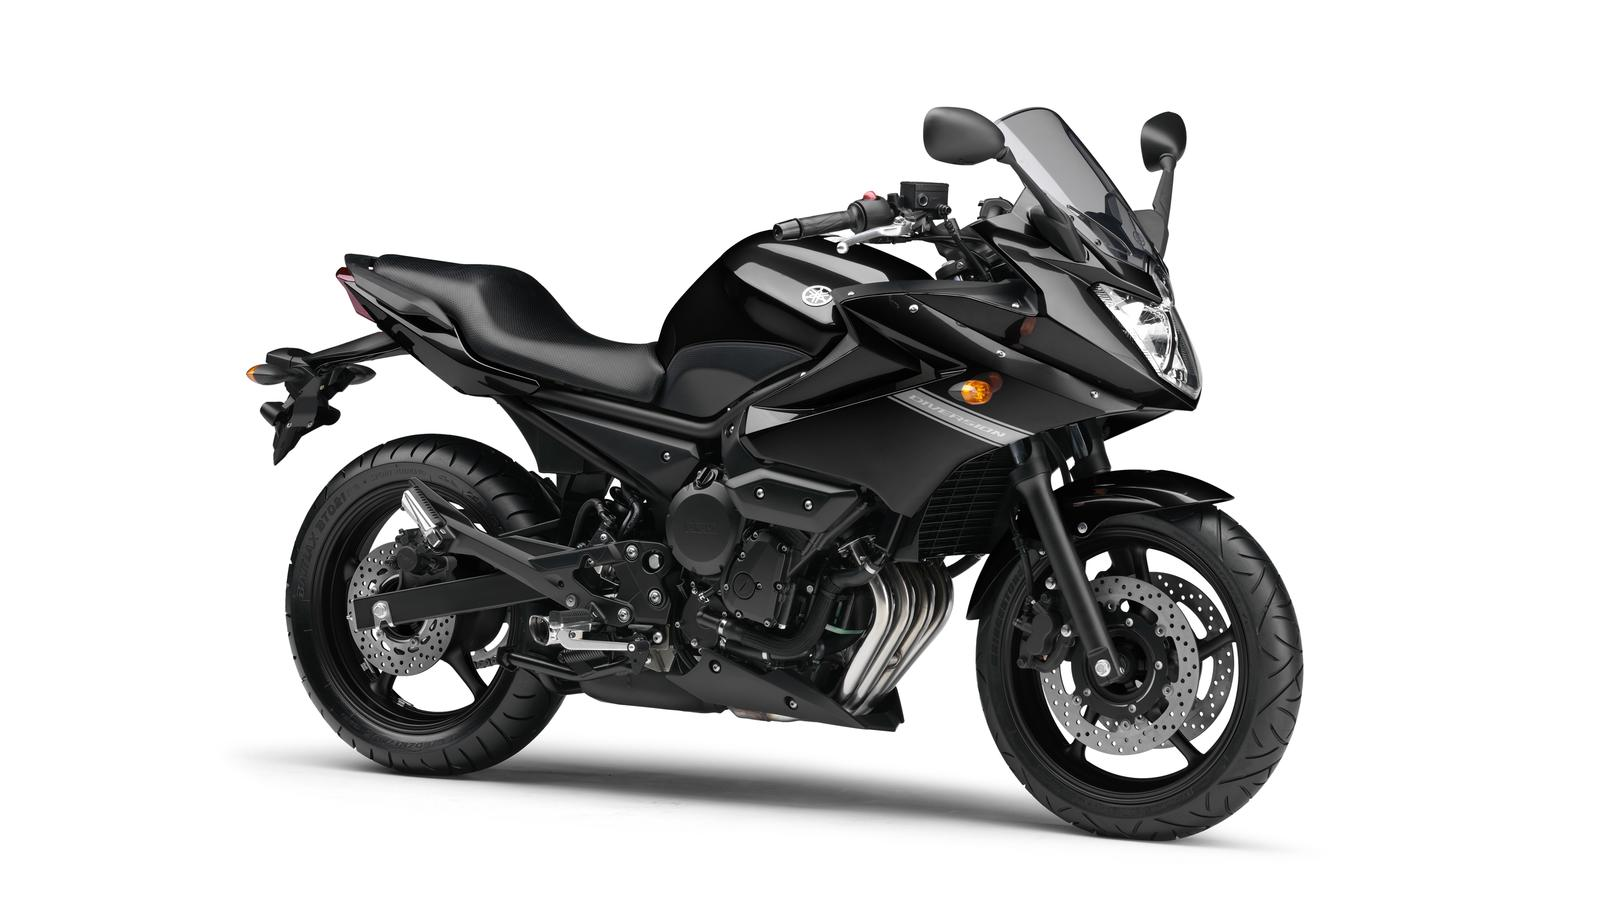 2010 Yamaha XJ6 Diversion EU Midnight Black Studio 001